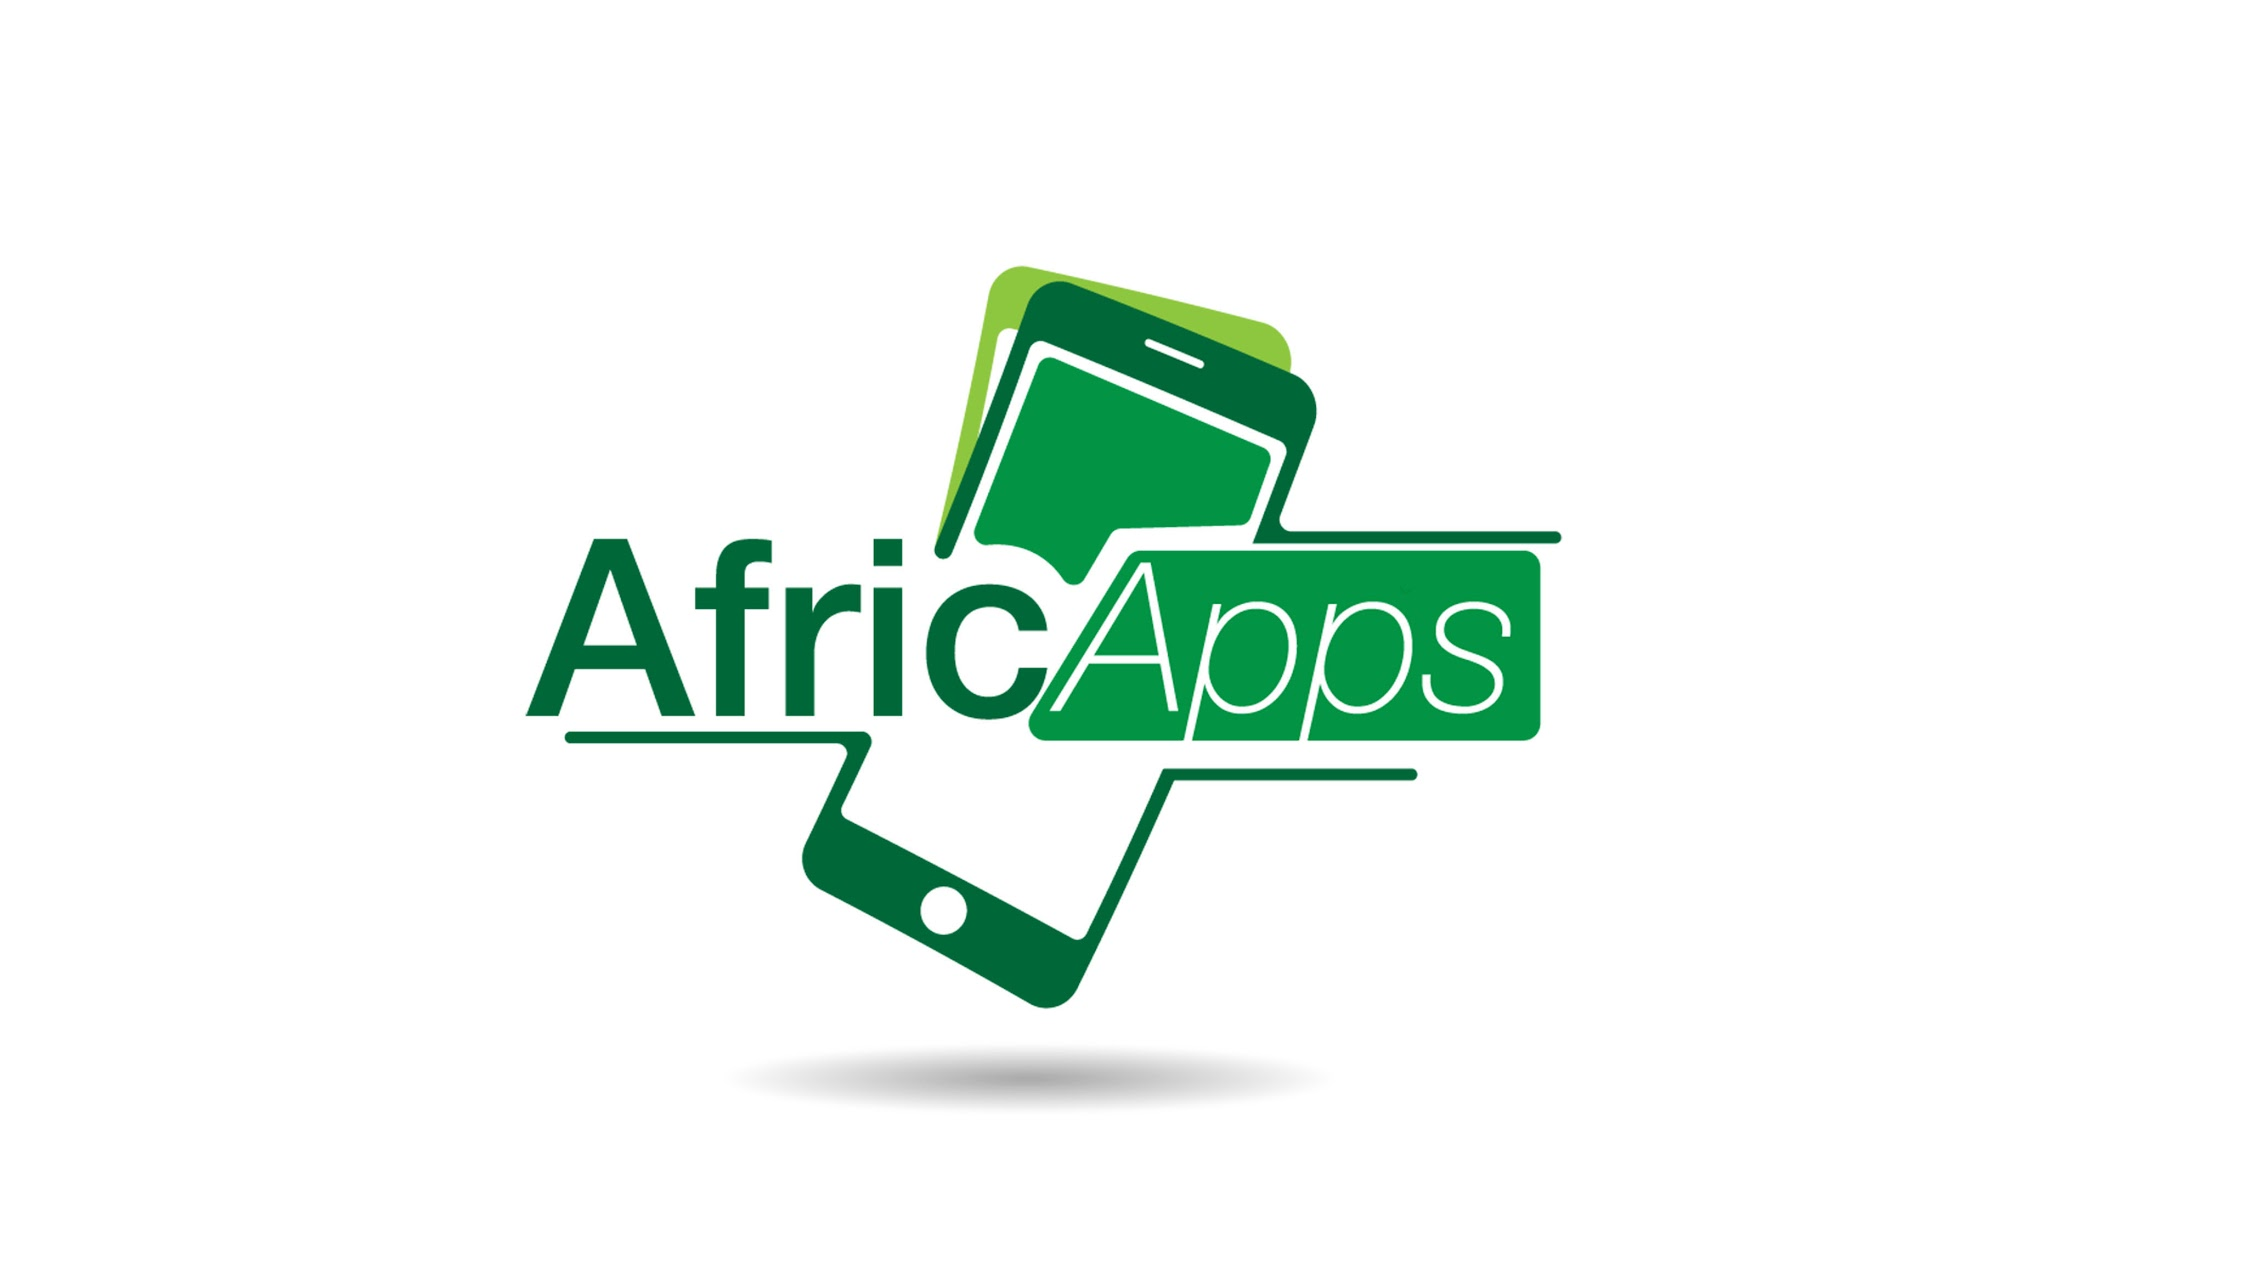 Africapps